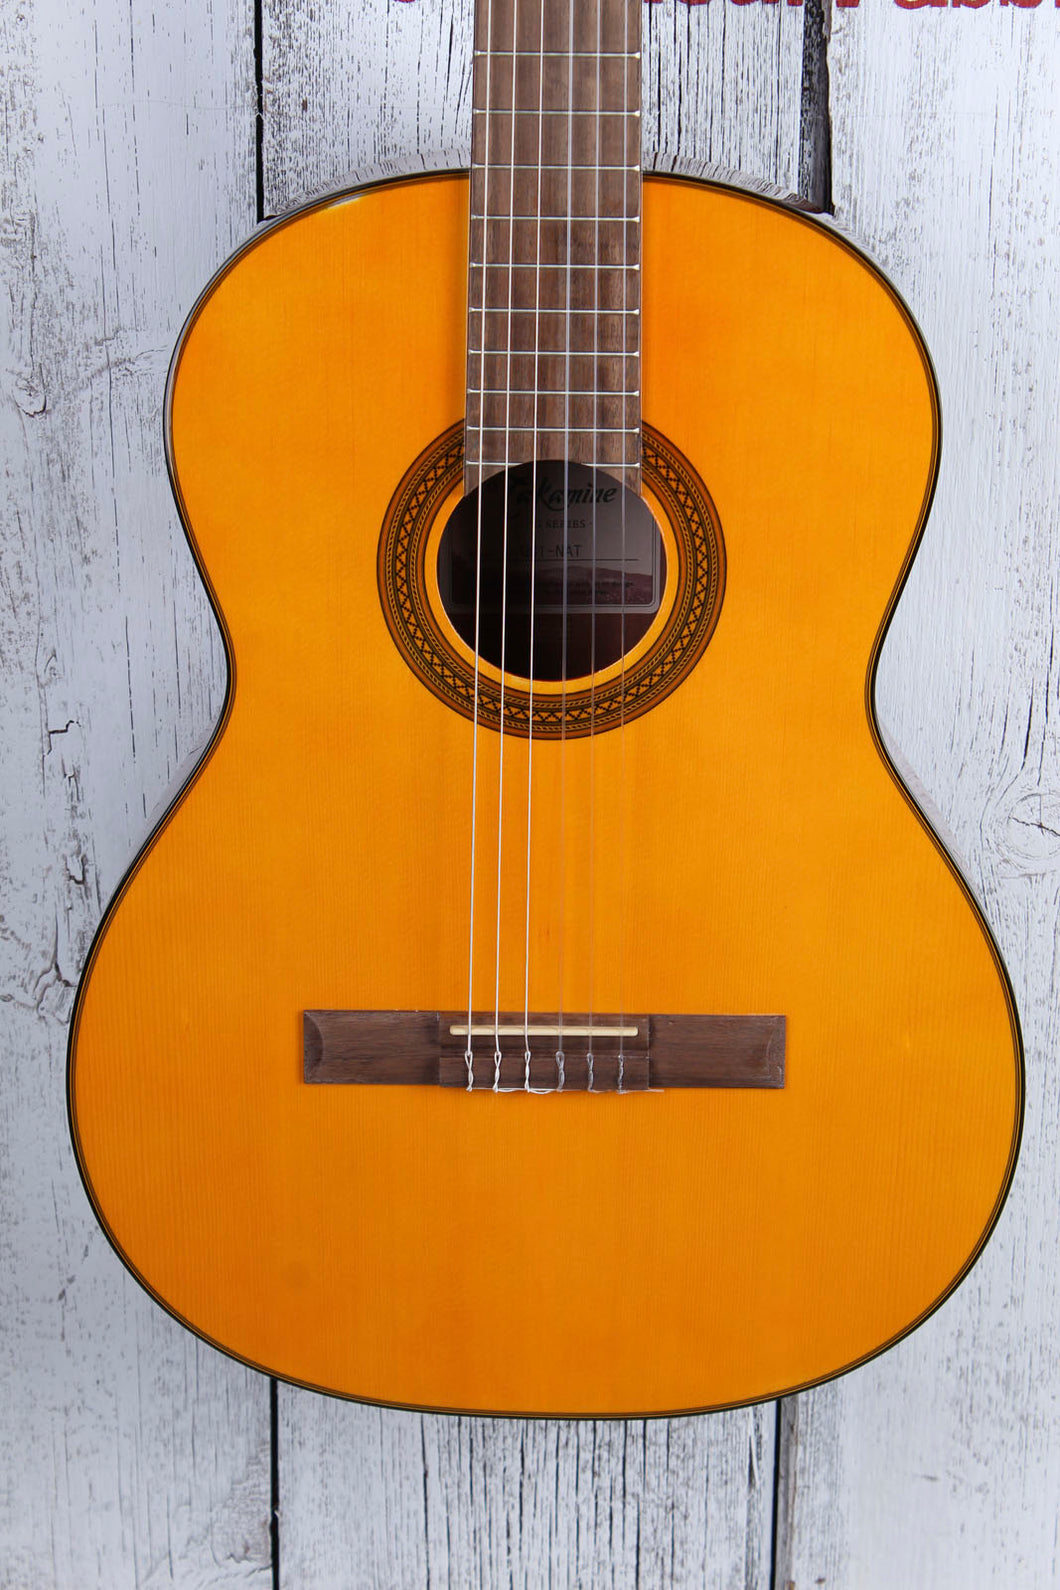 TAKGC1NAT_TC19044142 Takamine Classical with spruce top, sapele back and sides, -SLIGHT FLAW